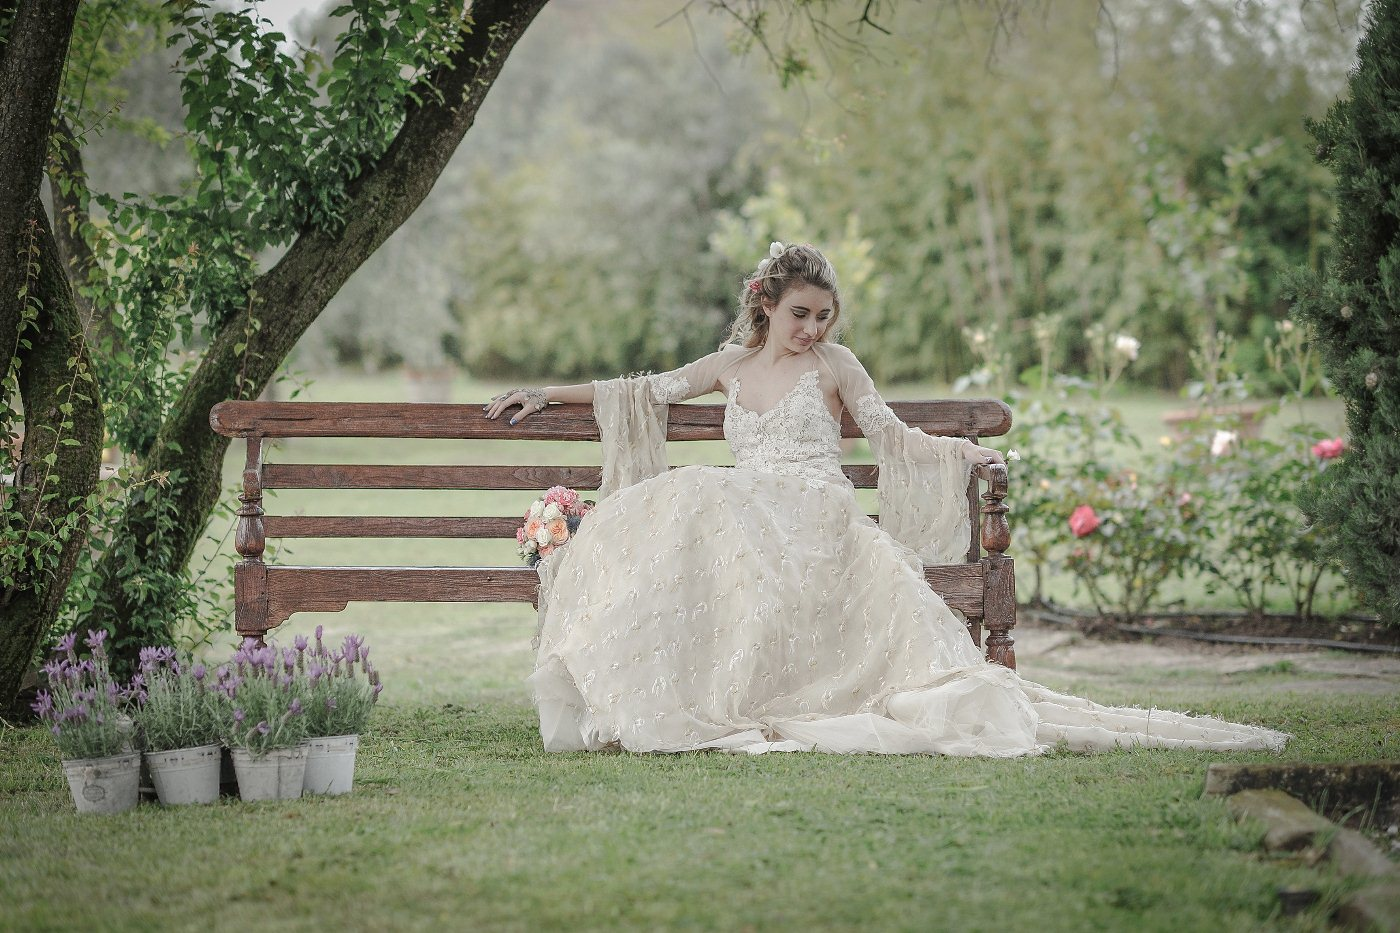 Wedding Photography Tuscany - Bride shooting in Tuscany | Domenico Costabile